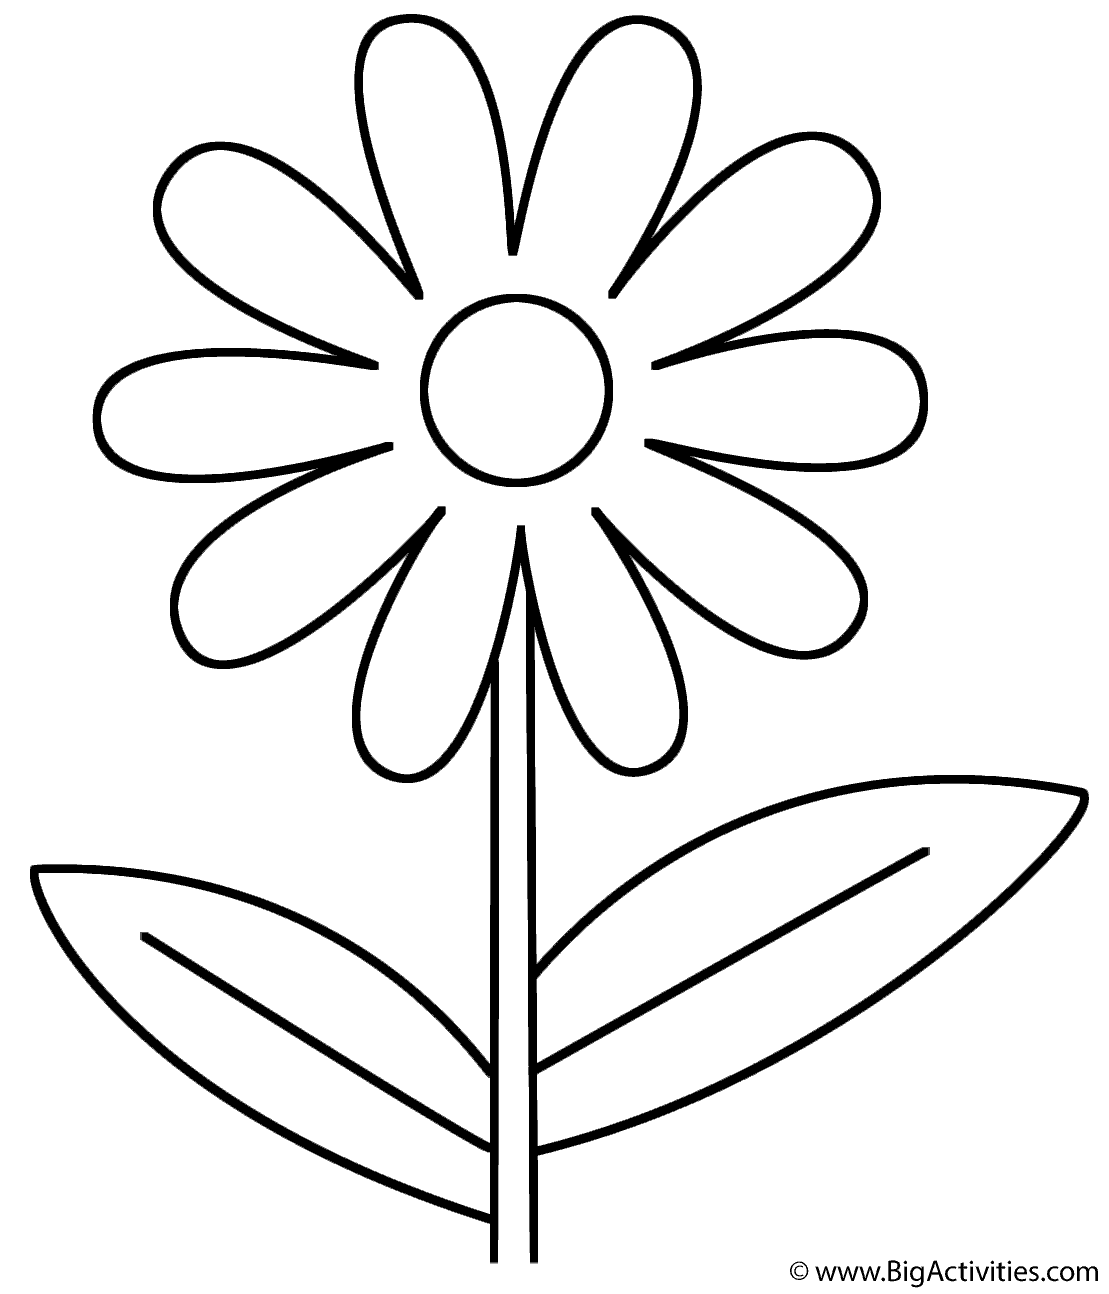 flowers outlines for colouring flower coloring page plants for flowers outlines colouring